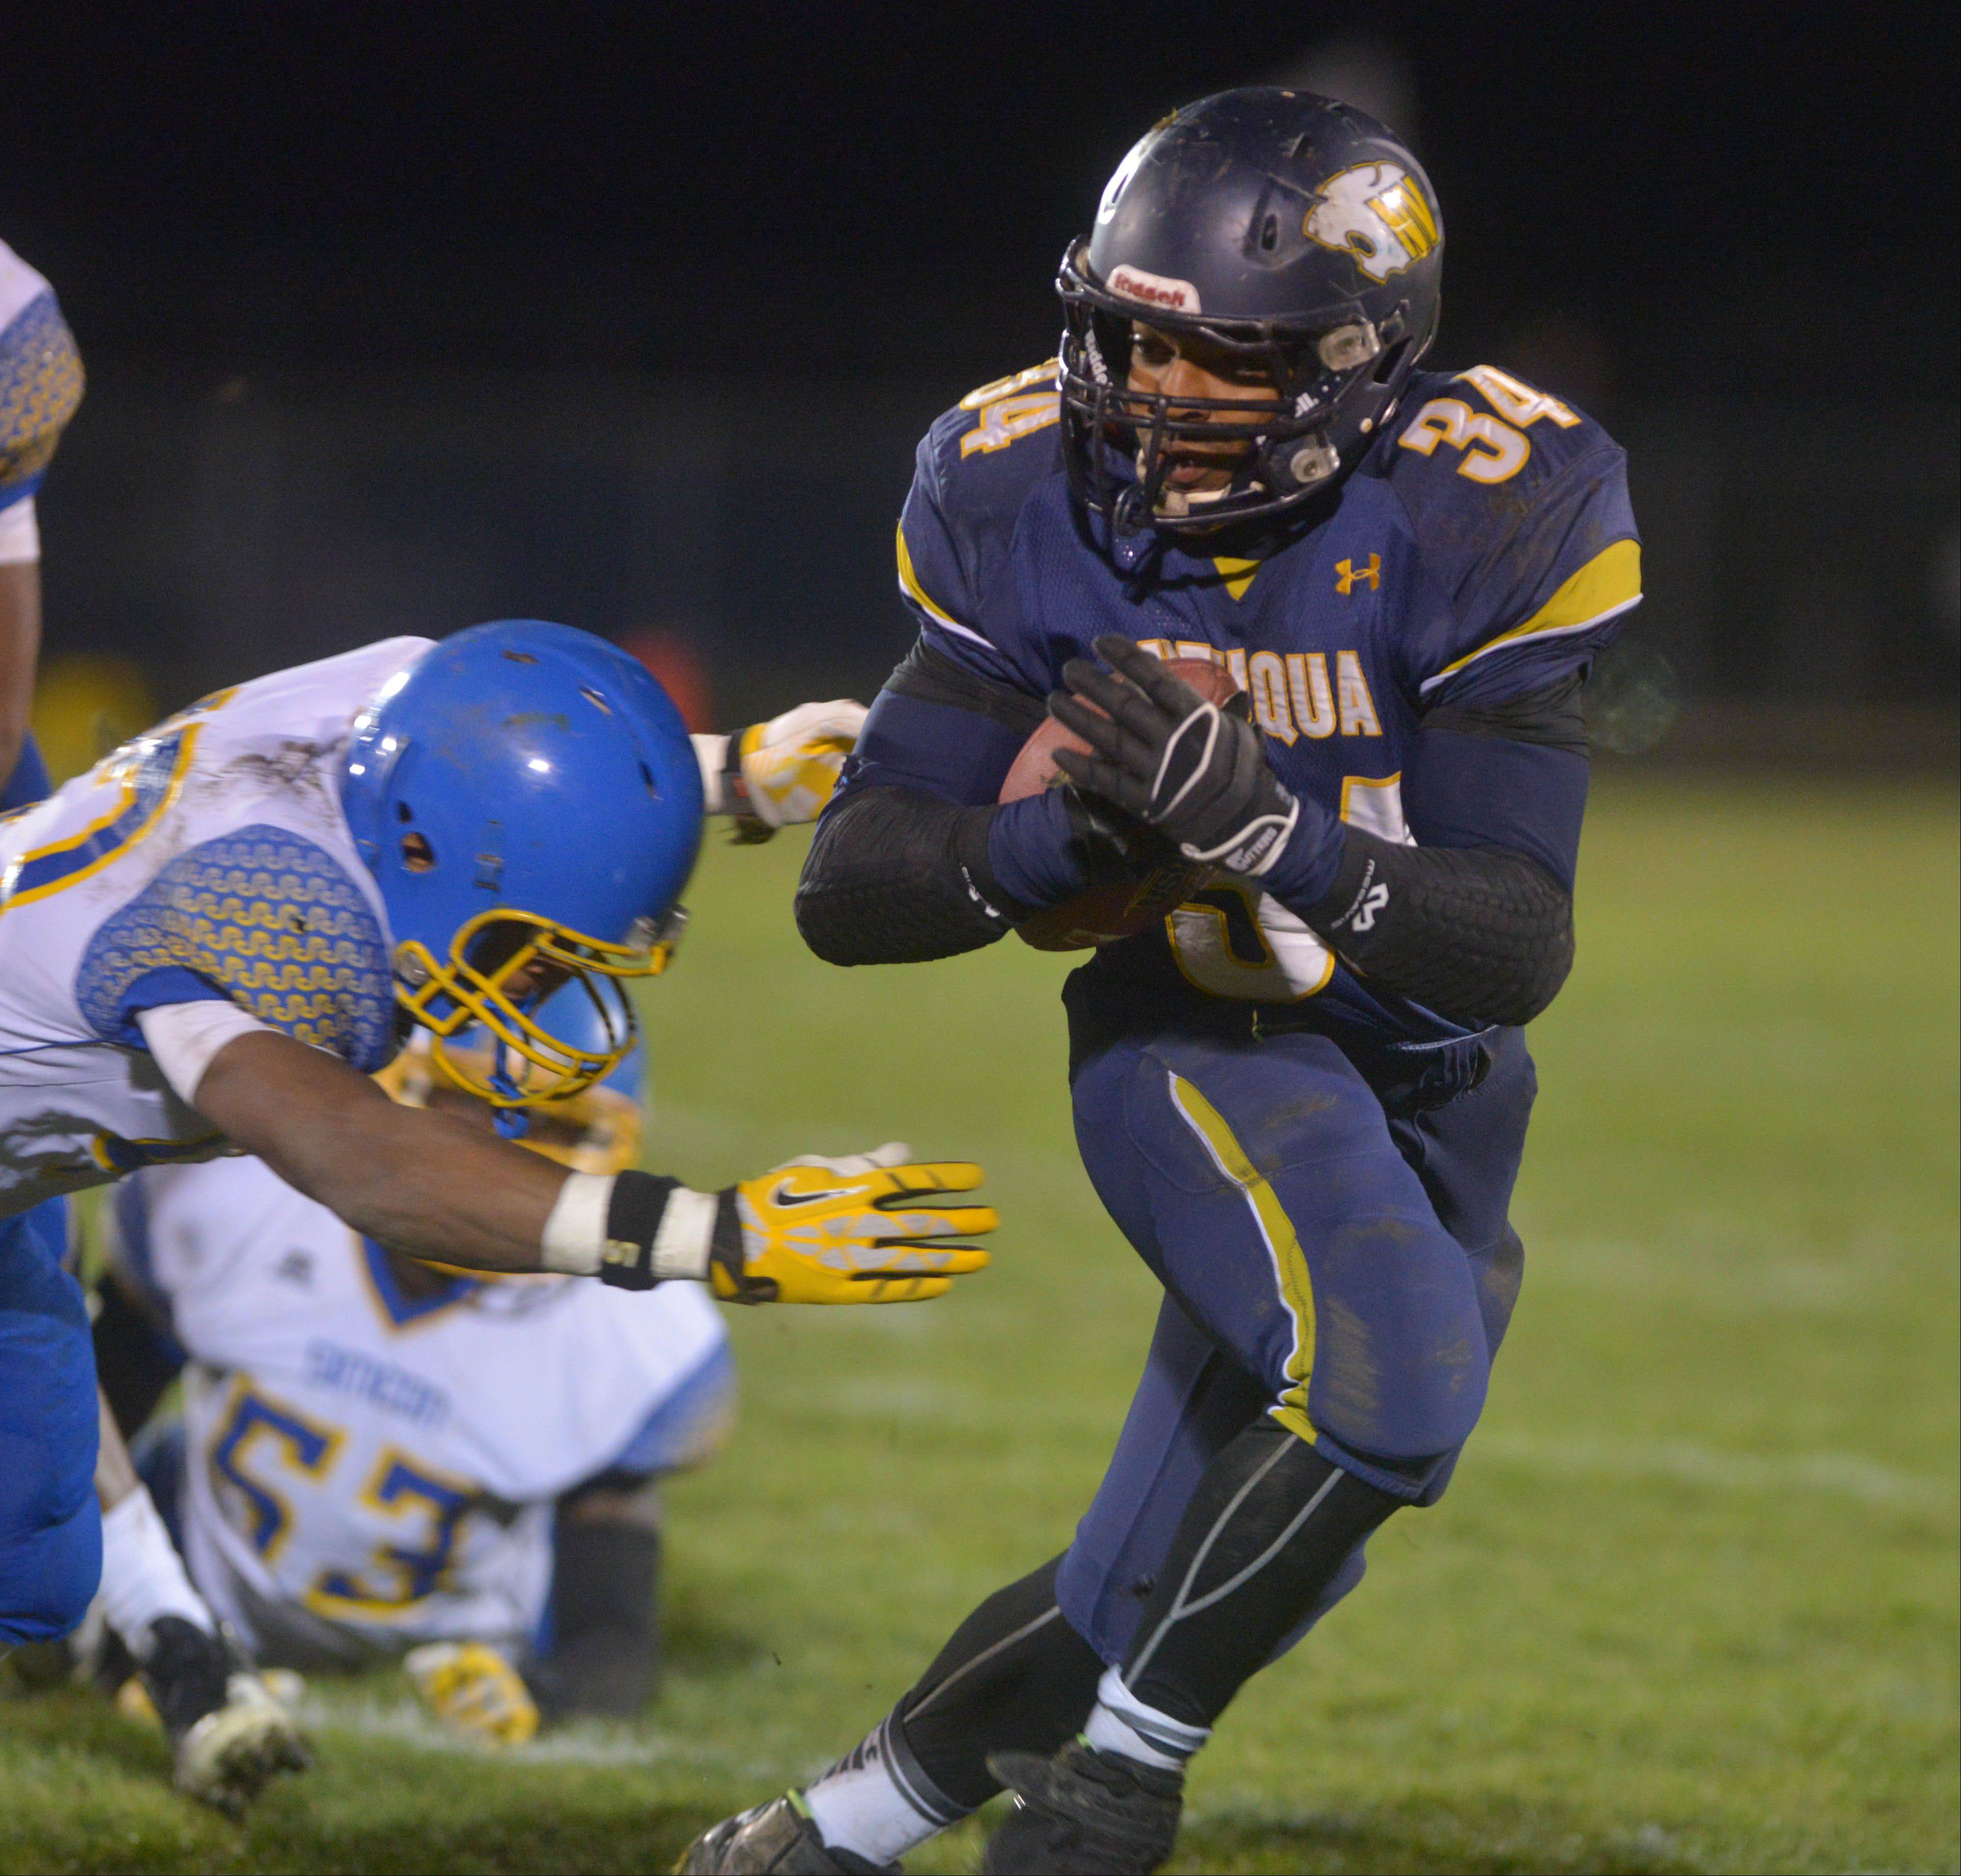 Maclin comes through for Neuqua Valley